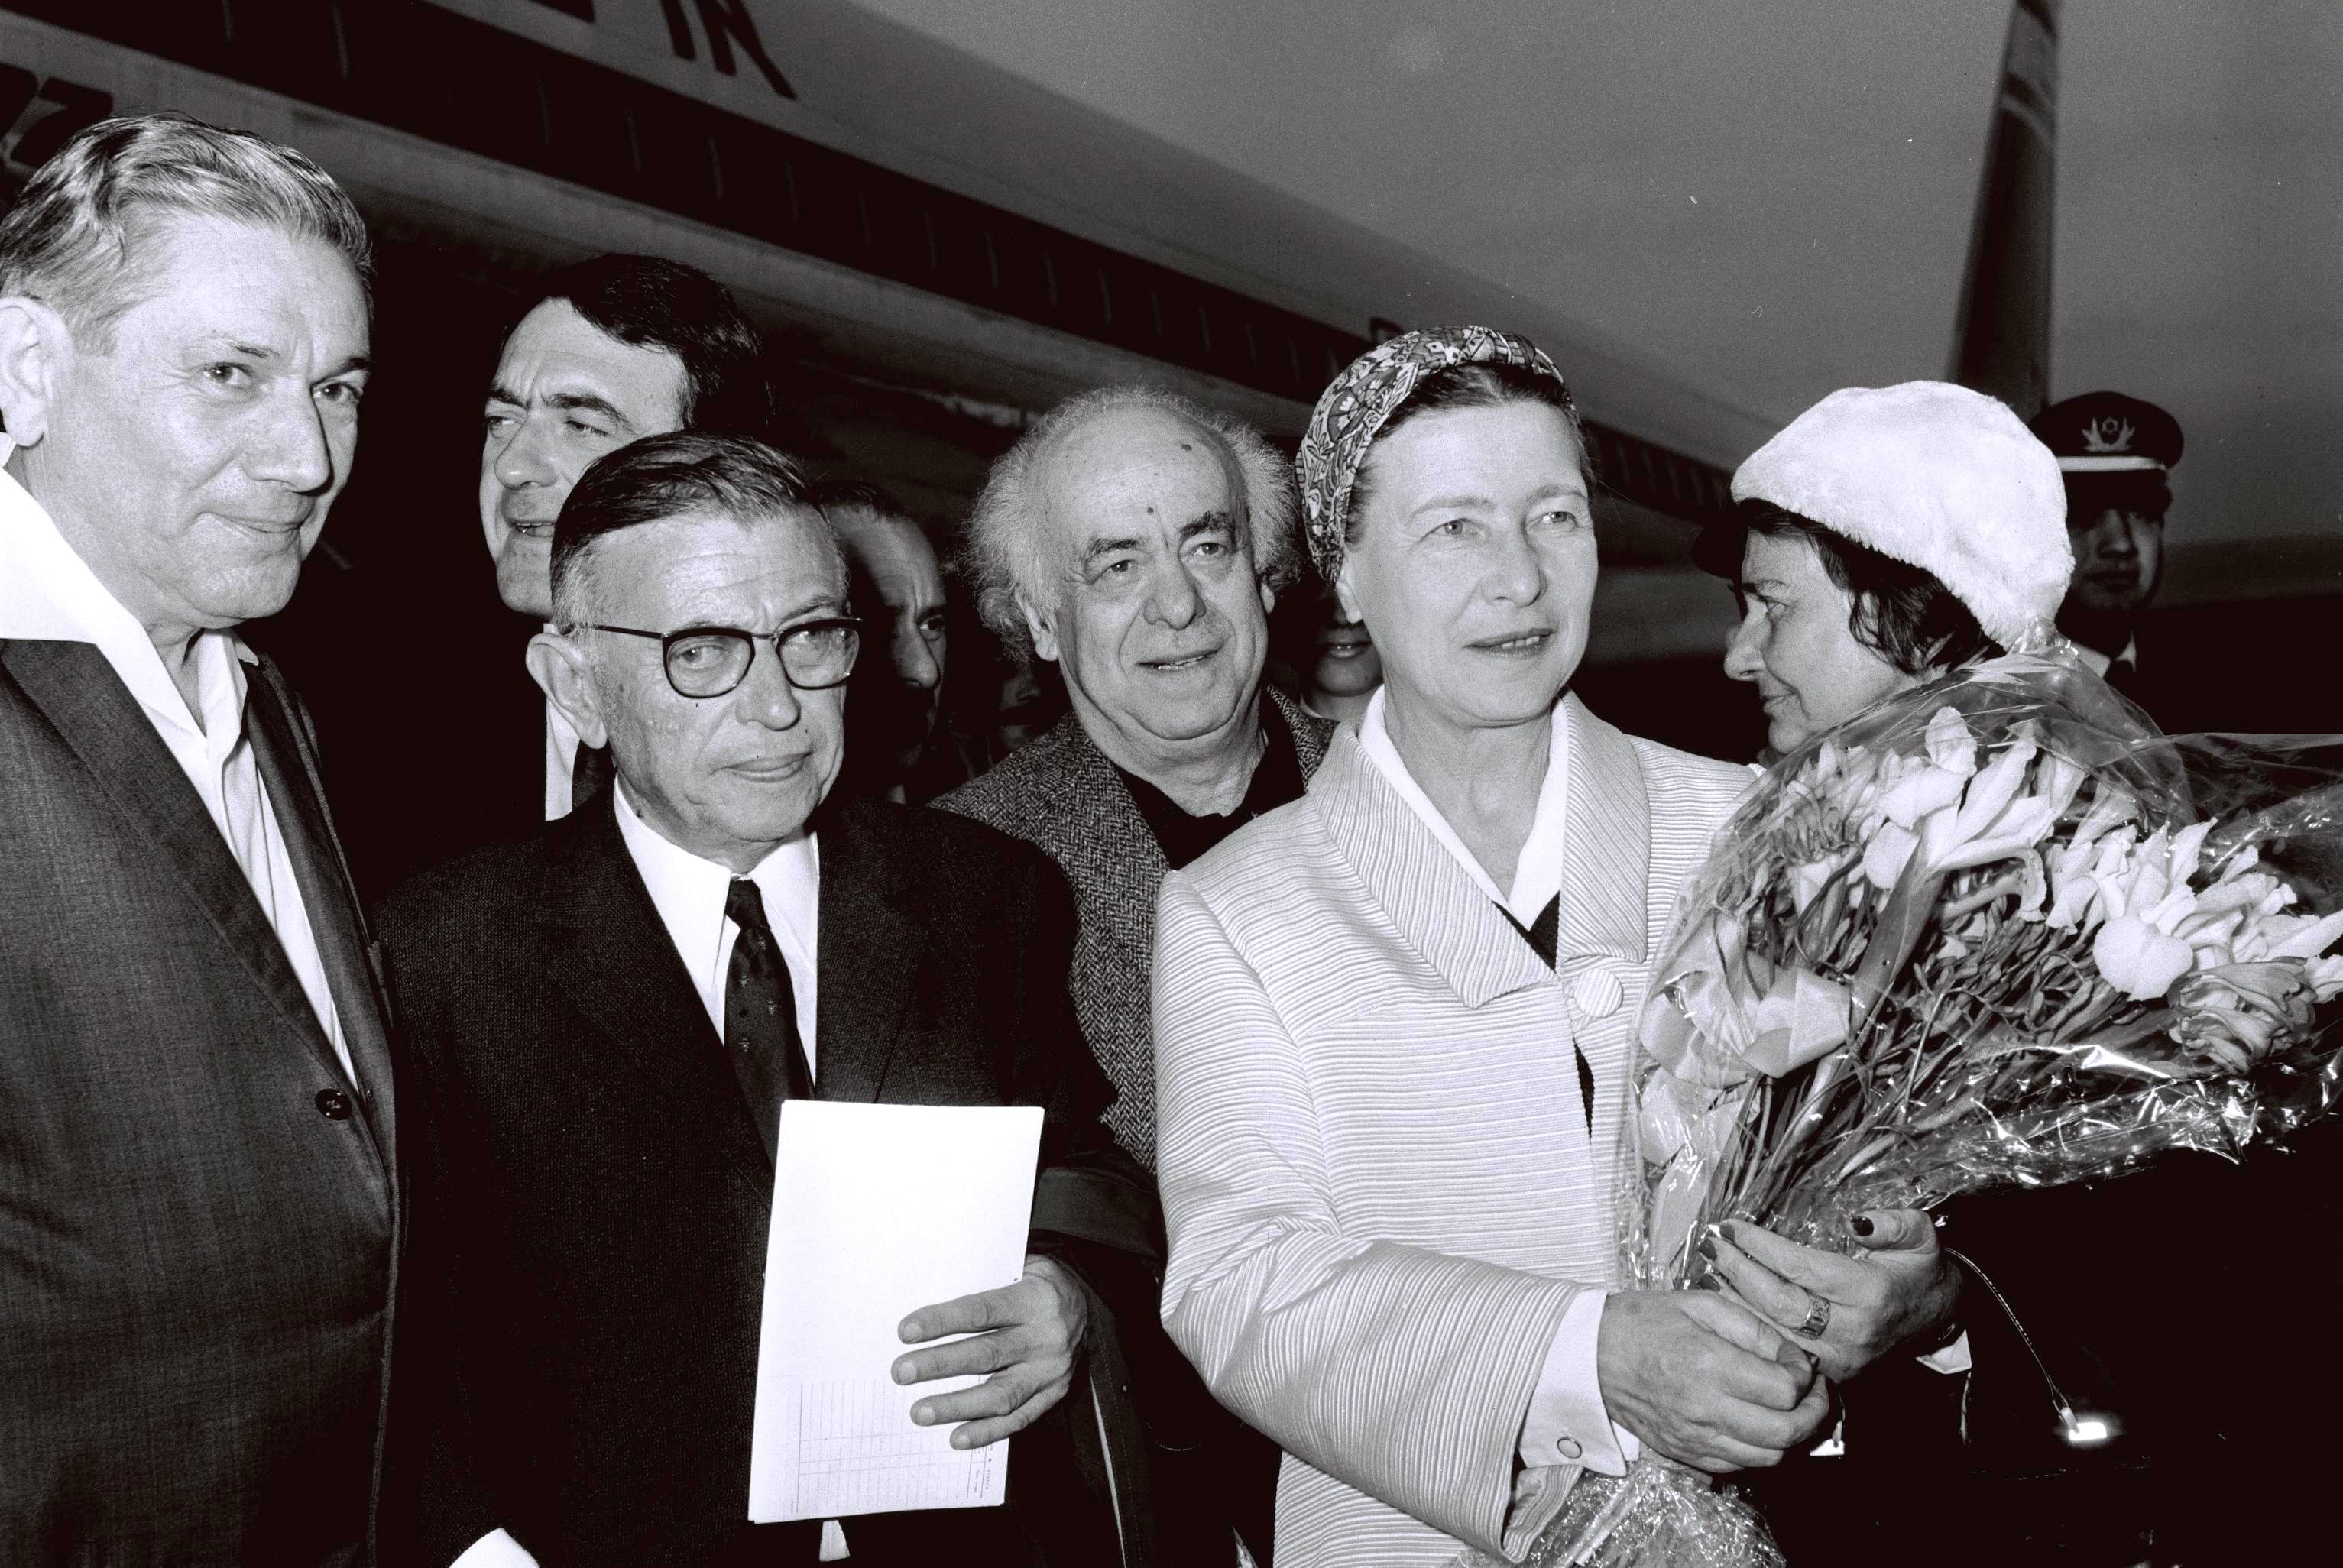 Simone de Beauvoir | Beauvoir and Sartre arriving Israel, welcomed by Avraham Shlonsky and Leah Goldberg, 1967